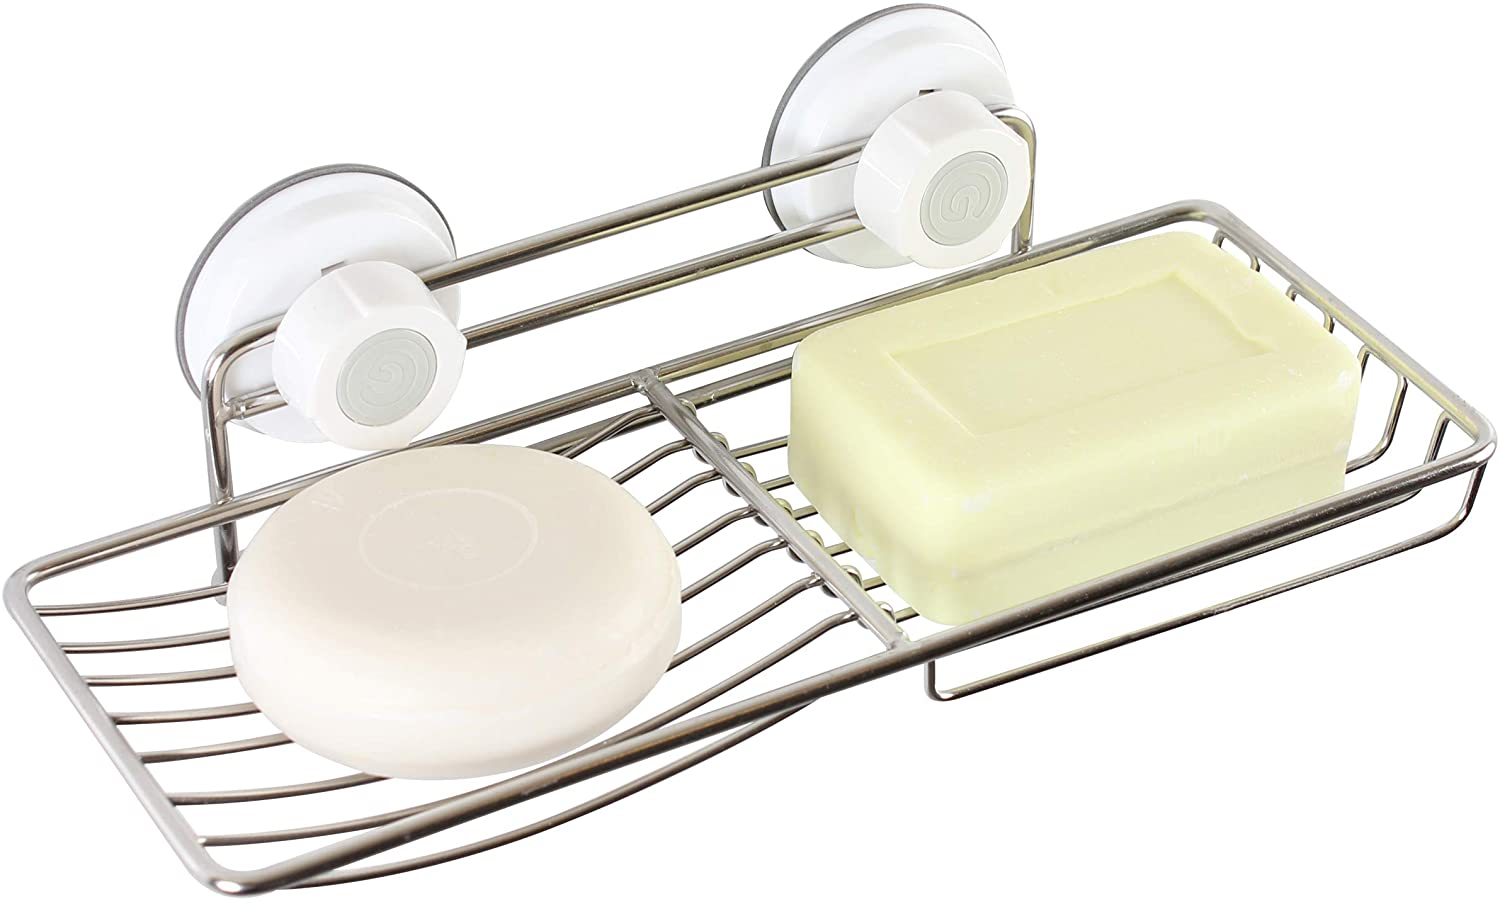 GLASTER Soap Dish Holder for Bathroom, Shower, Adsorption Holder Strong Rustproof Stainless Steel, Removable, Reusable, Adhesive NO, Drill Tool Free, Easy Install